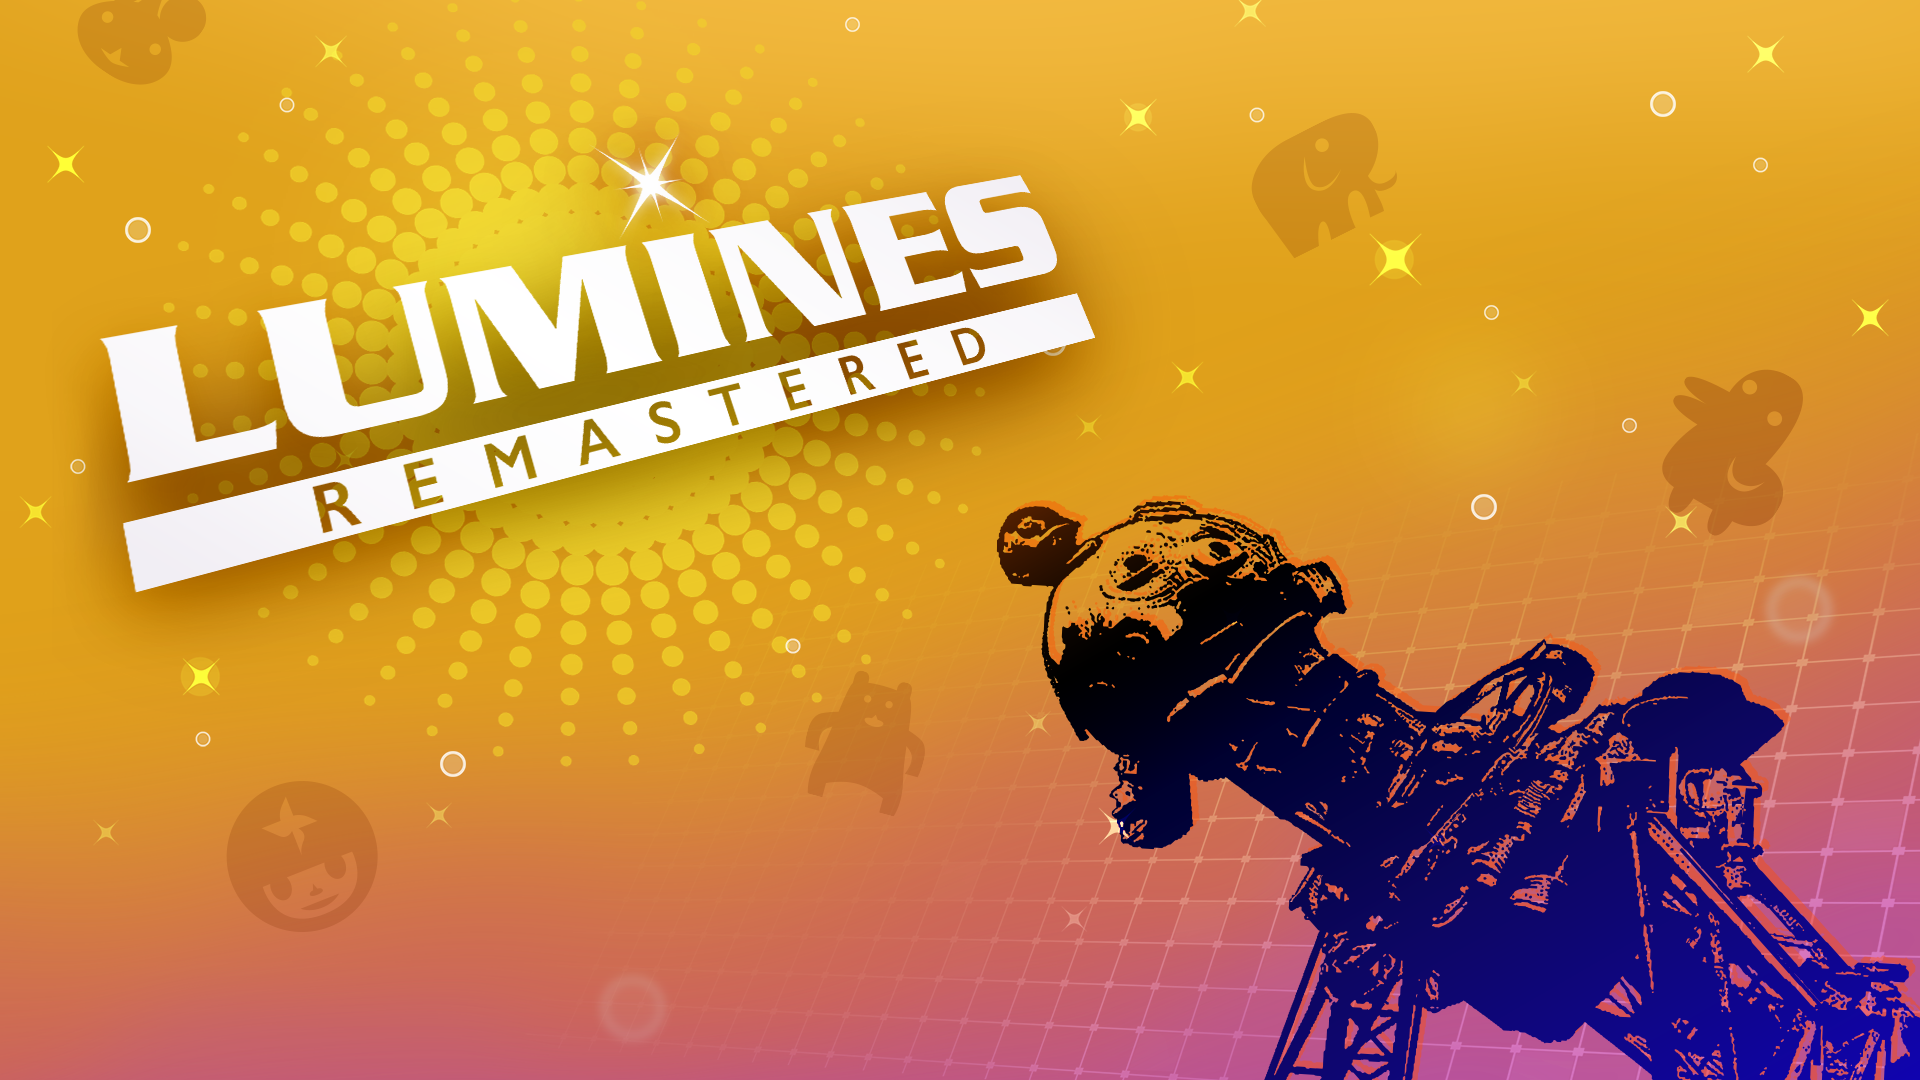 Lumines Remastered turns the Nintendo Switch into a full-body